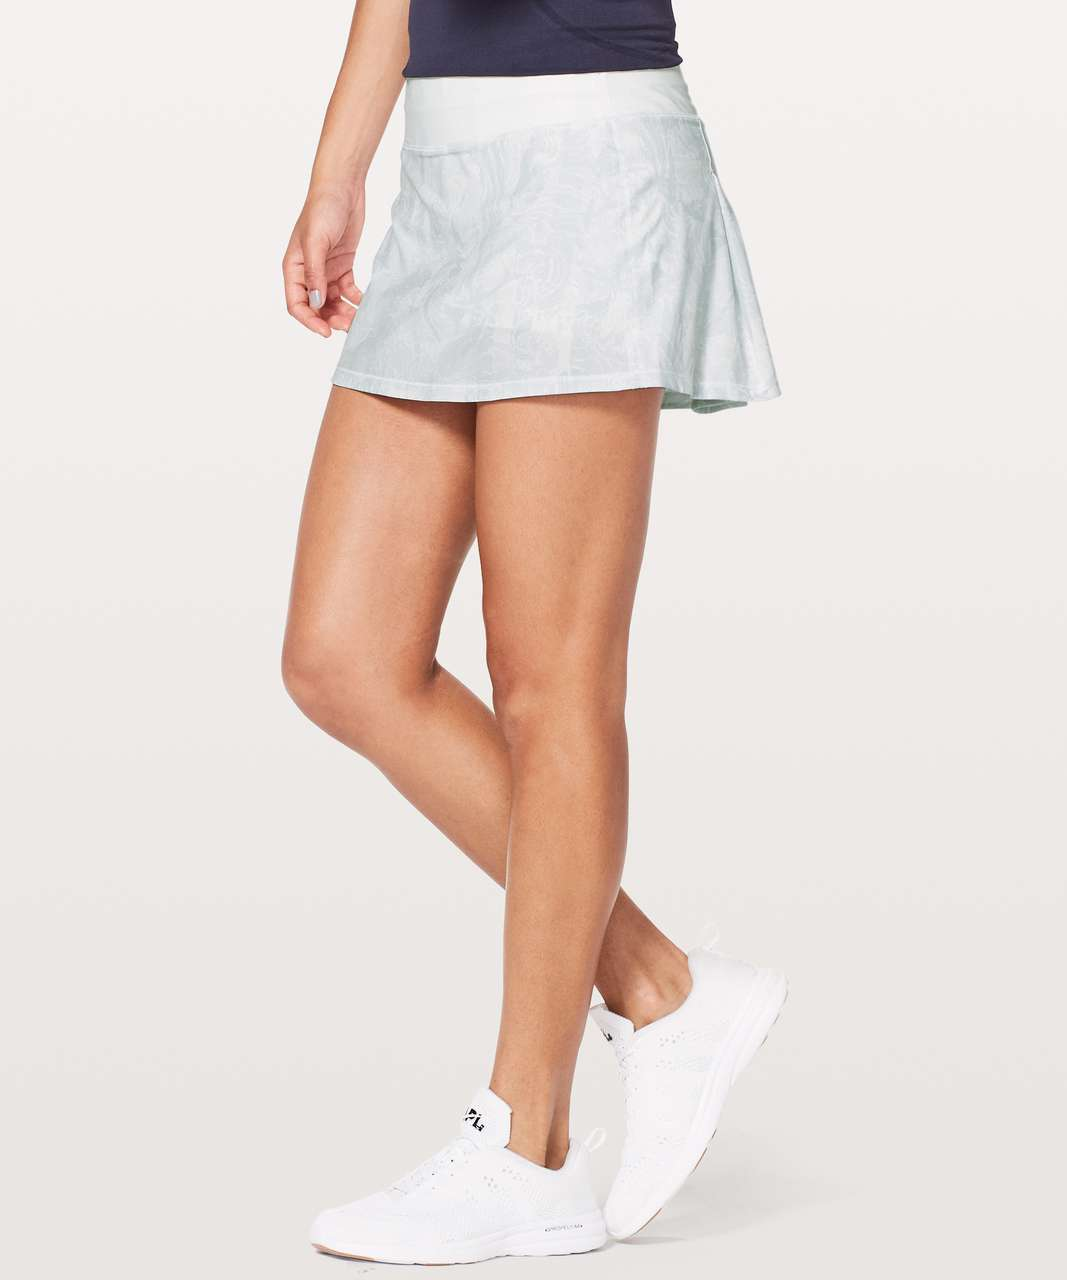 Lululemon Pace Rival Skirt (Regular) *No Panels - Eternal Wave White / White